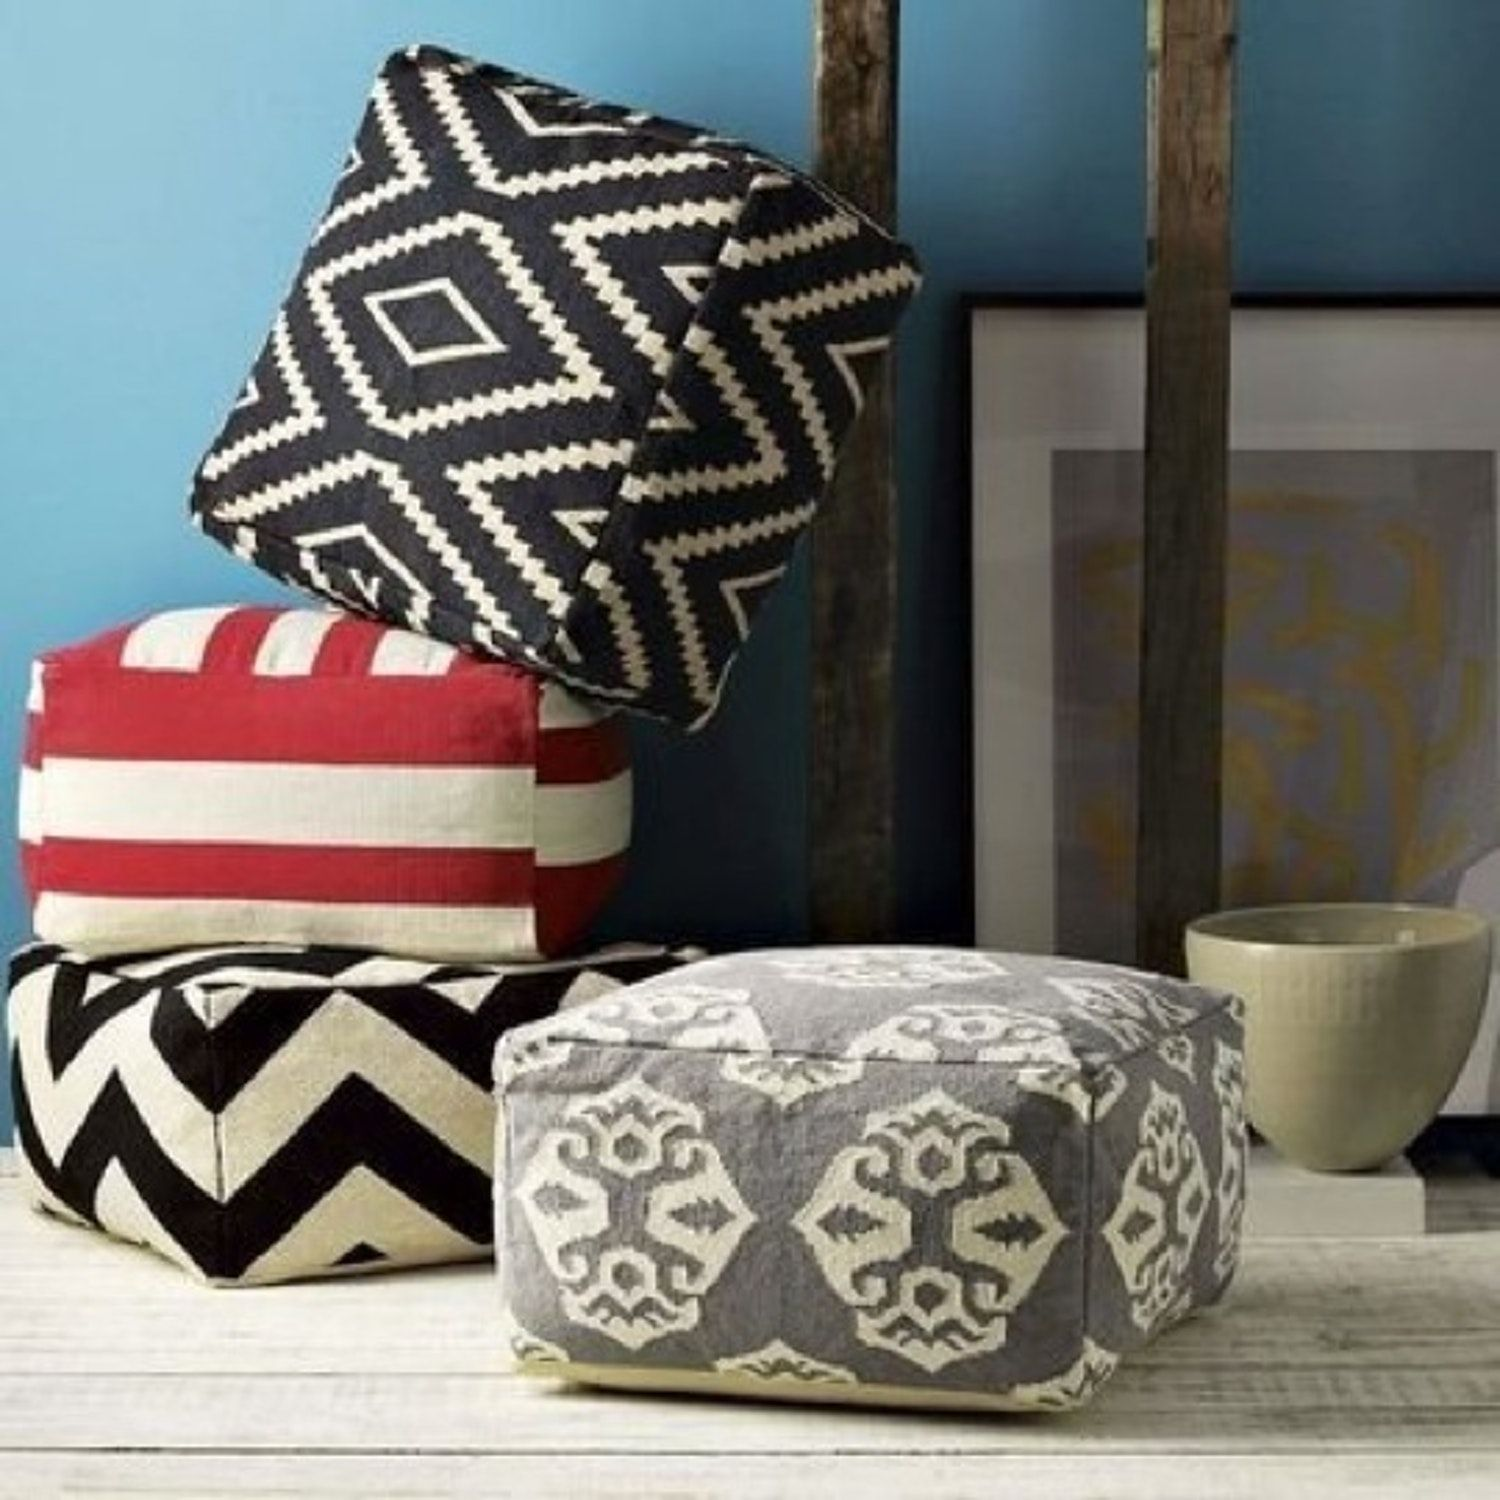 Weekend Project: Make Your Own Floor Pouf from $19 IKEA Mats ...